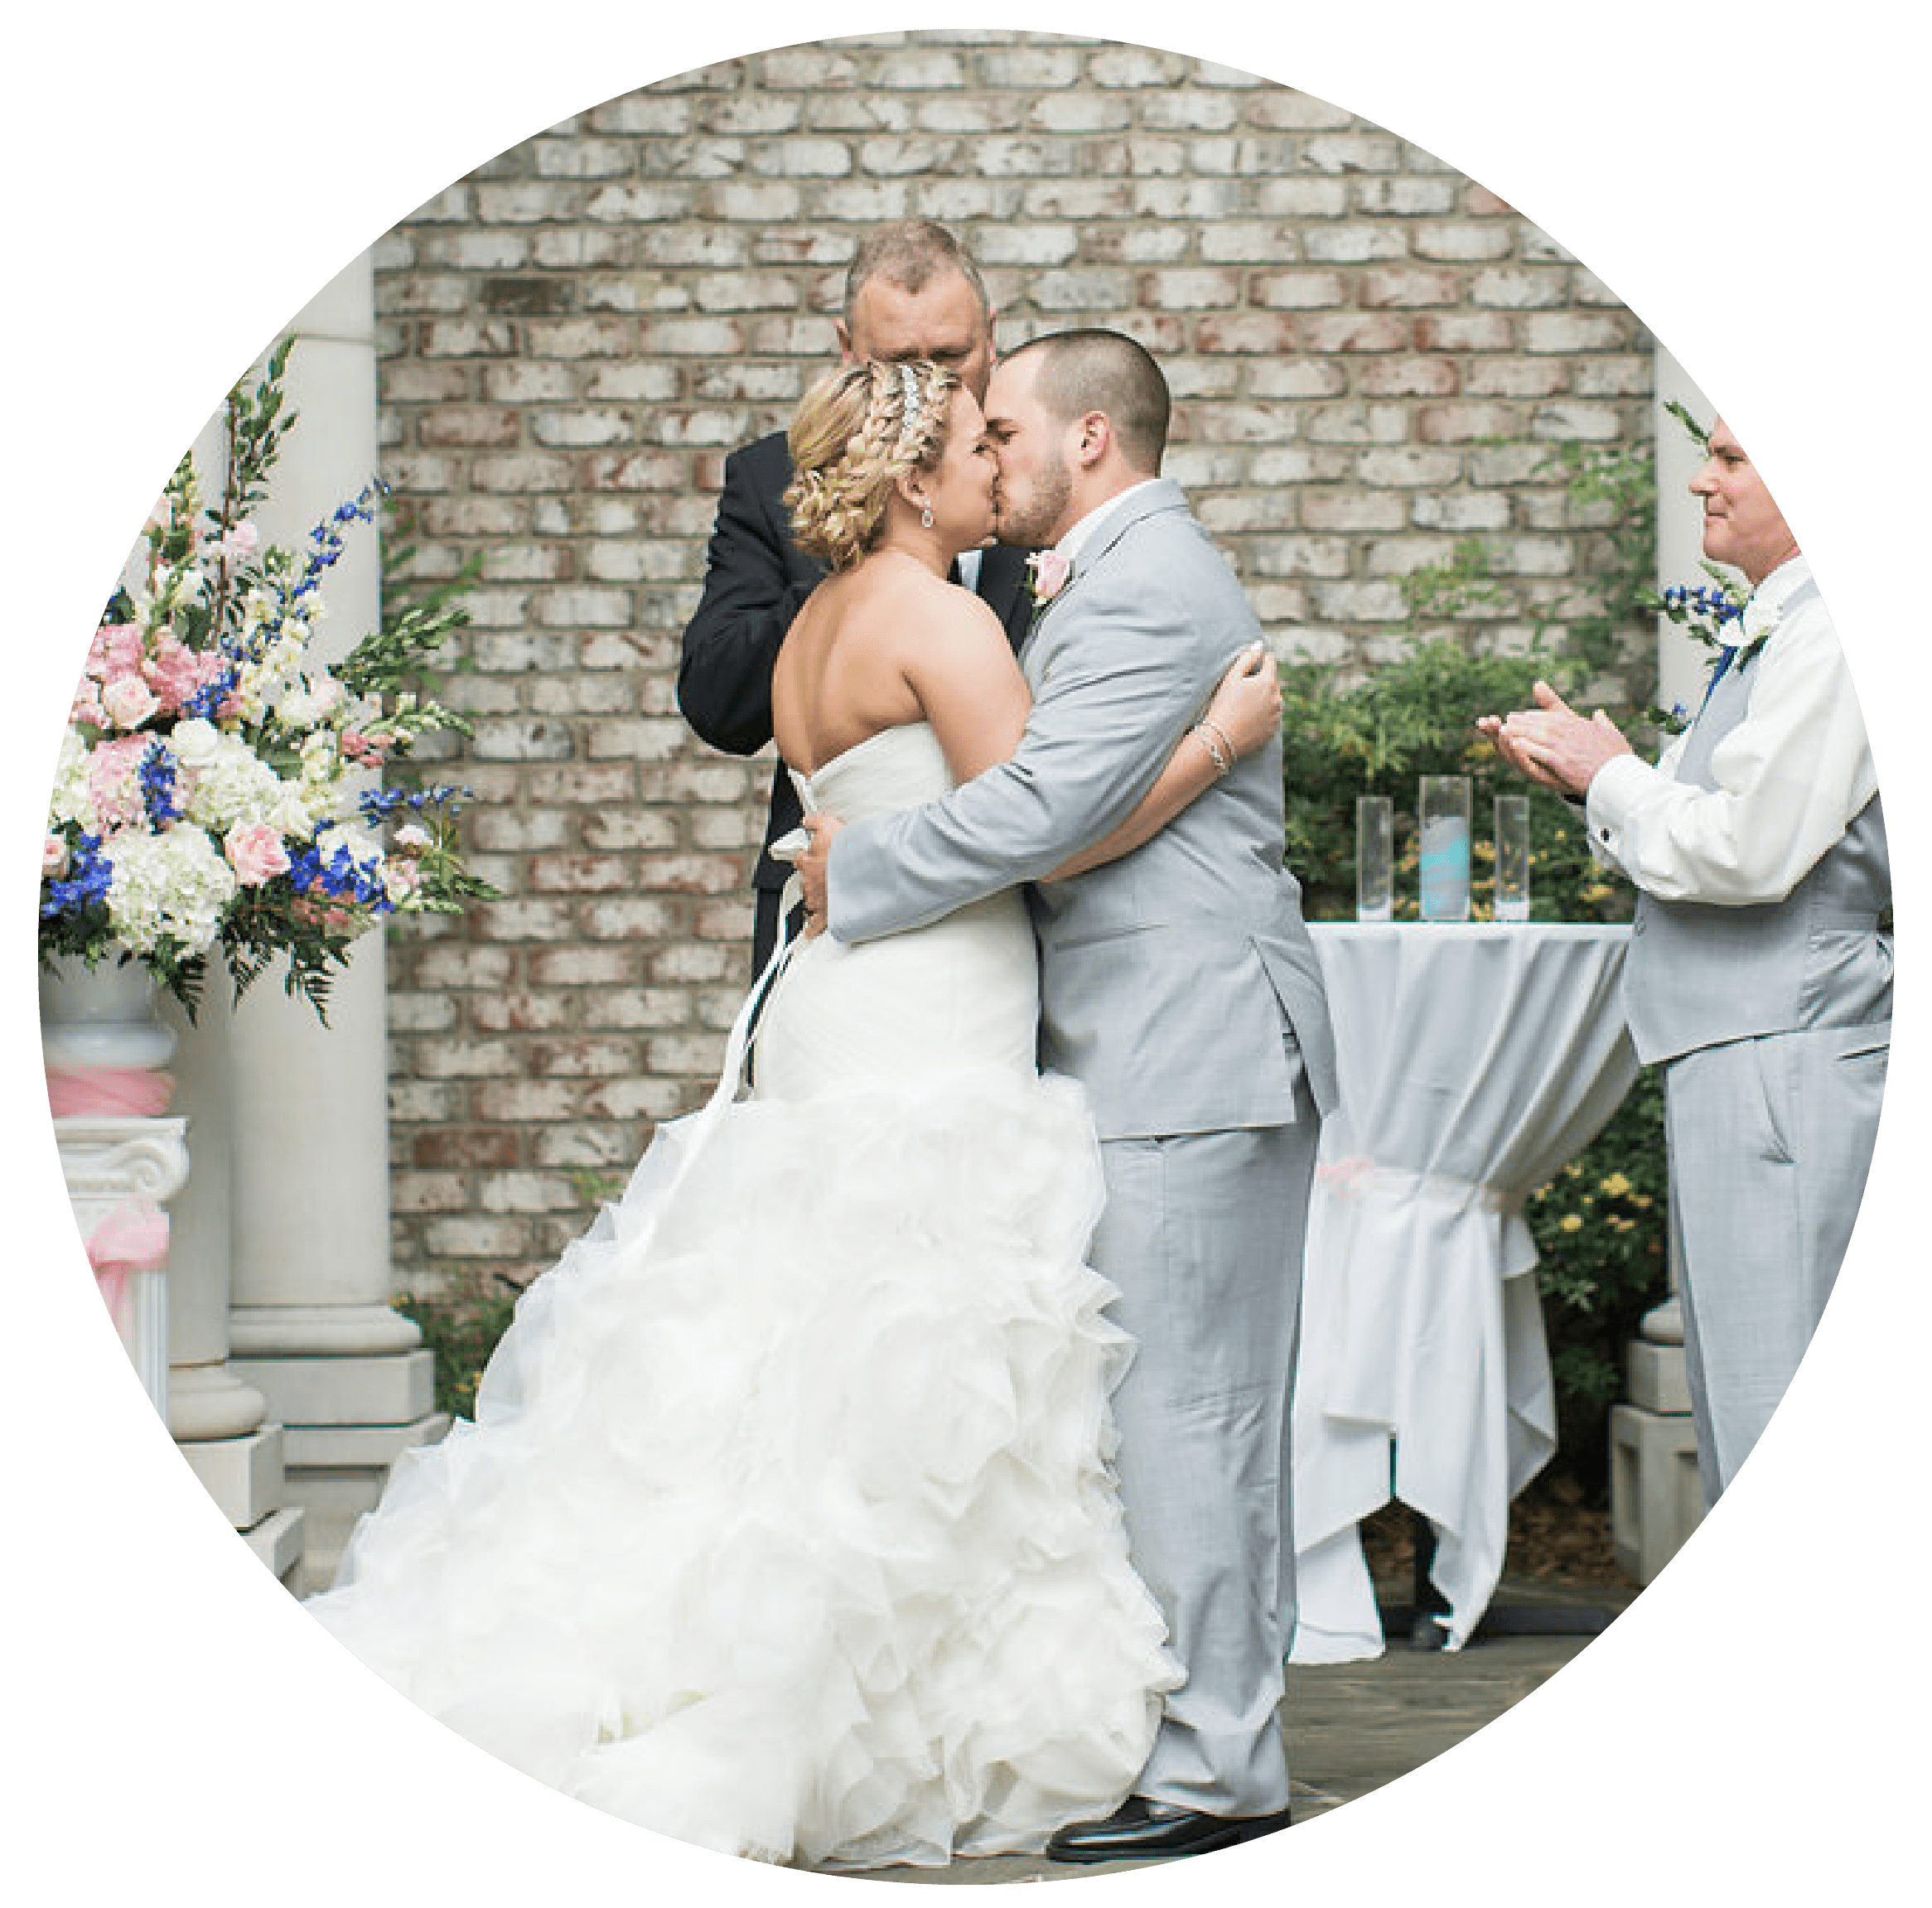 Kind Words, Gena  |  Revolution Mill Events